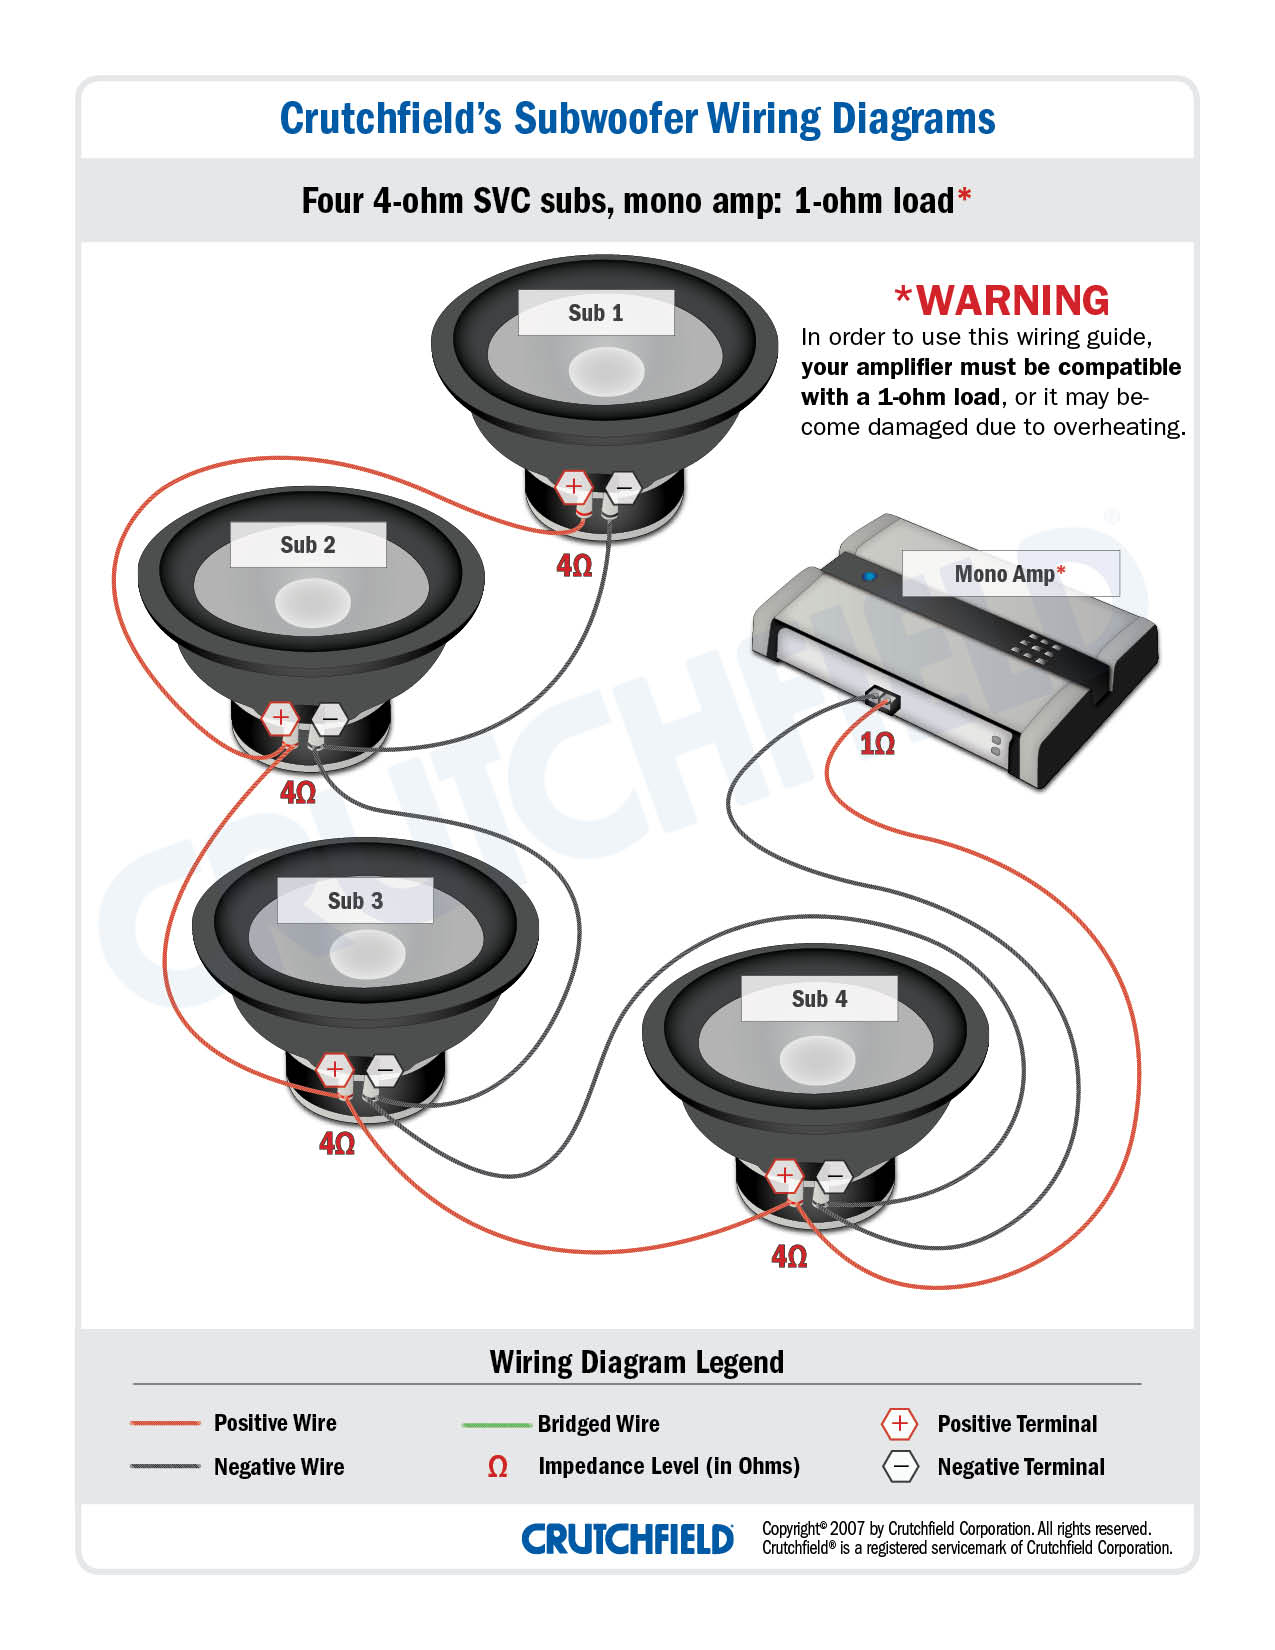 4 SVC 4 ohm mono low imp wiring subwoofers what's all this about ohms? dual 2 ohm wiring diagram at cos-gaming.co